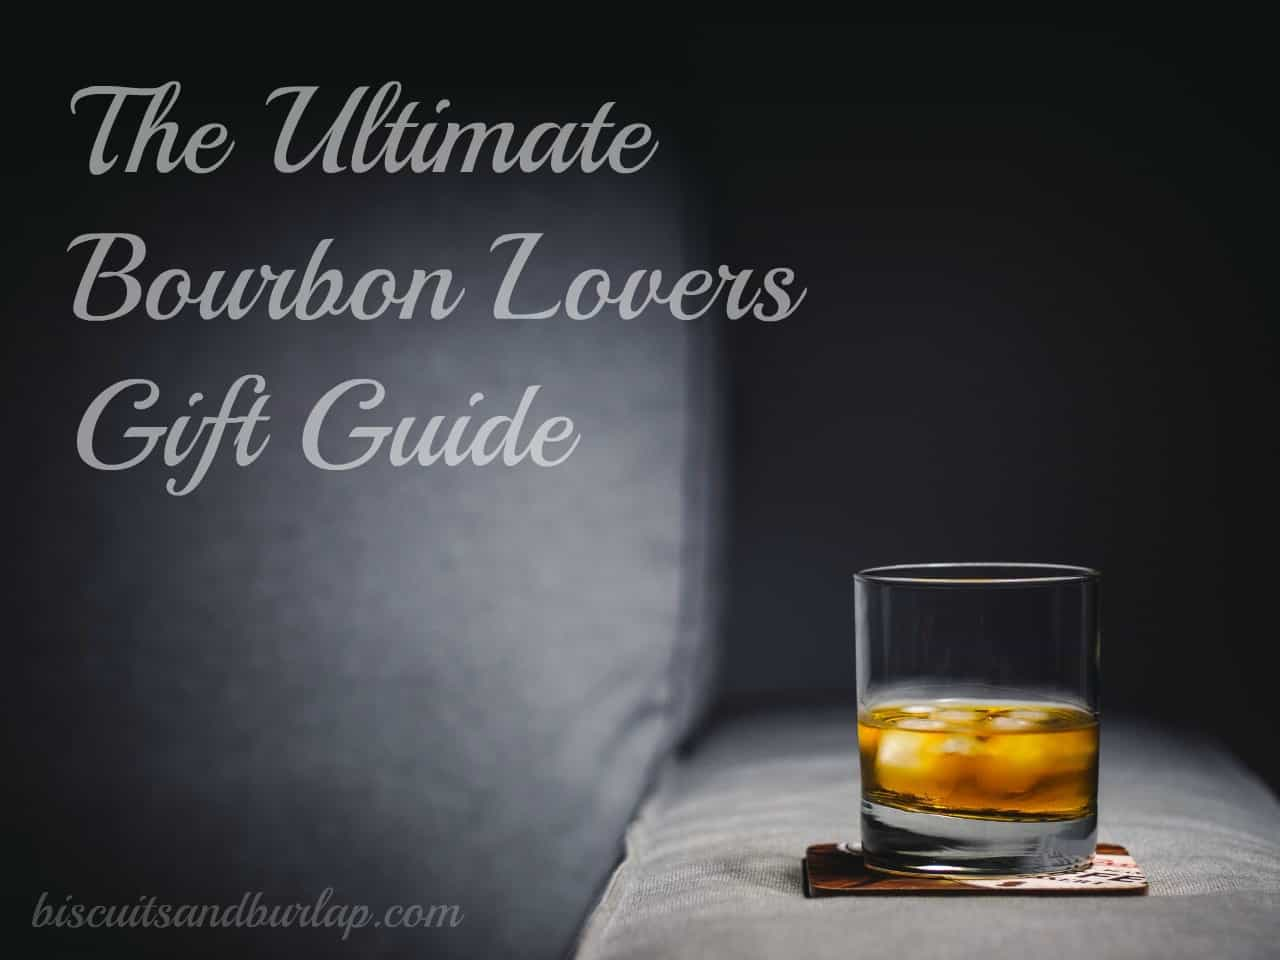 The Ultimate Bourbon Lovers Gift Guide